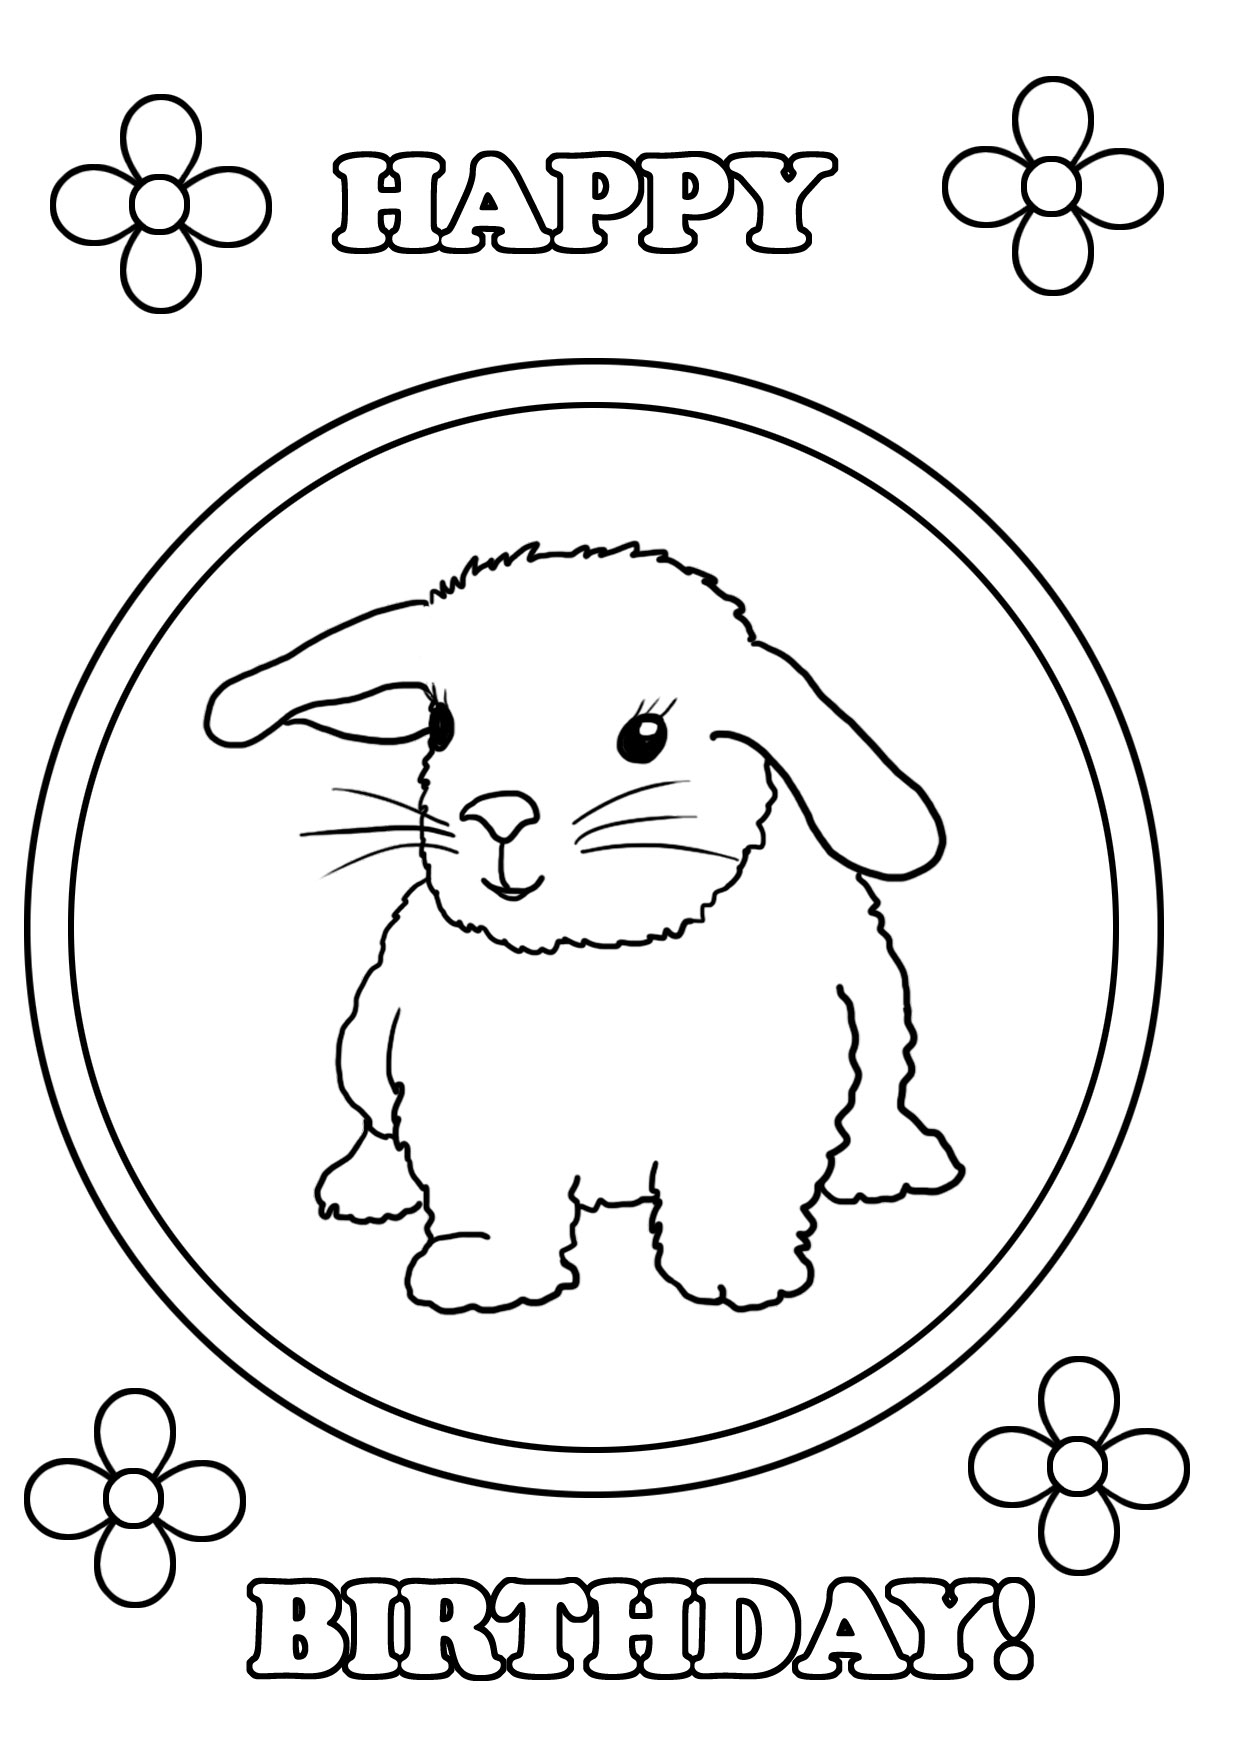 Coloring Pages For Birthday Birthday Coloring Pages